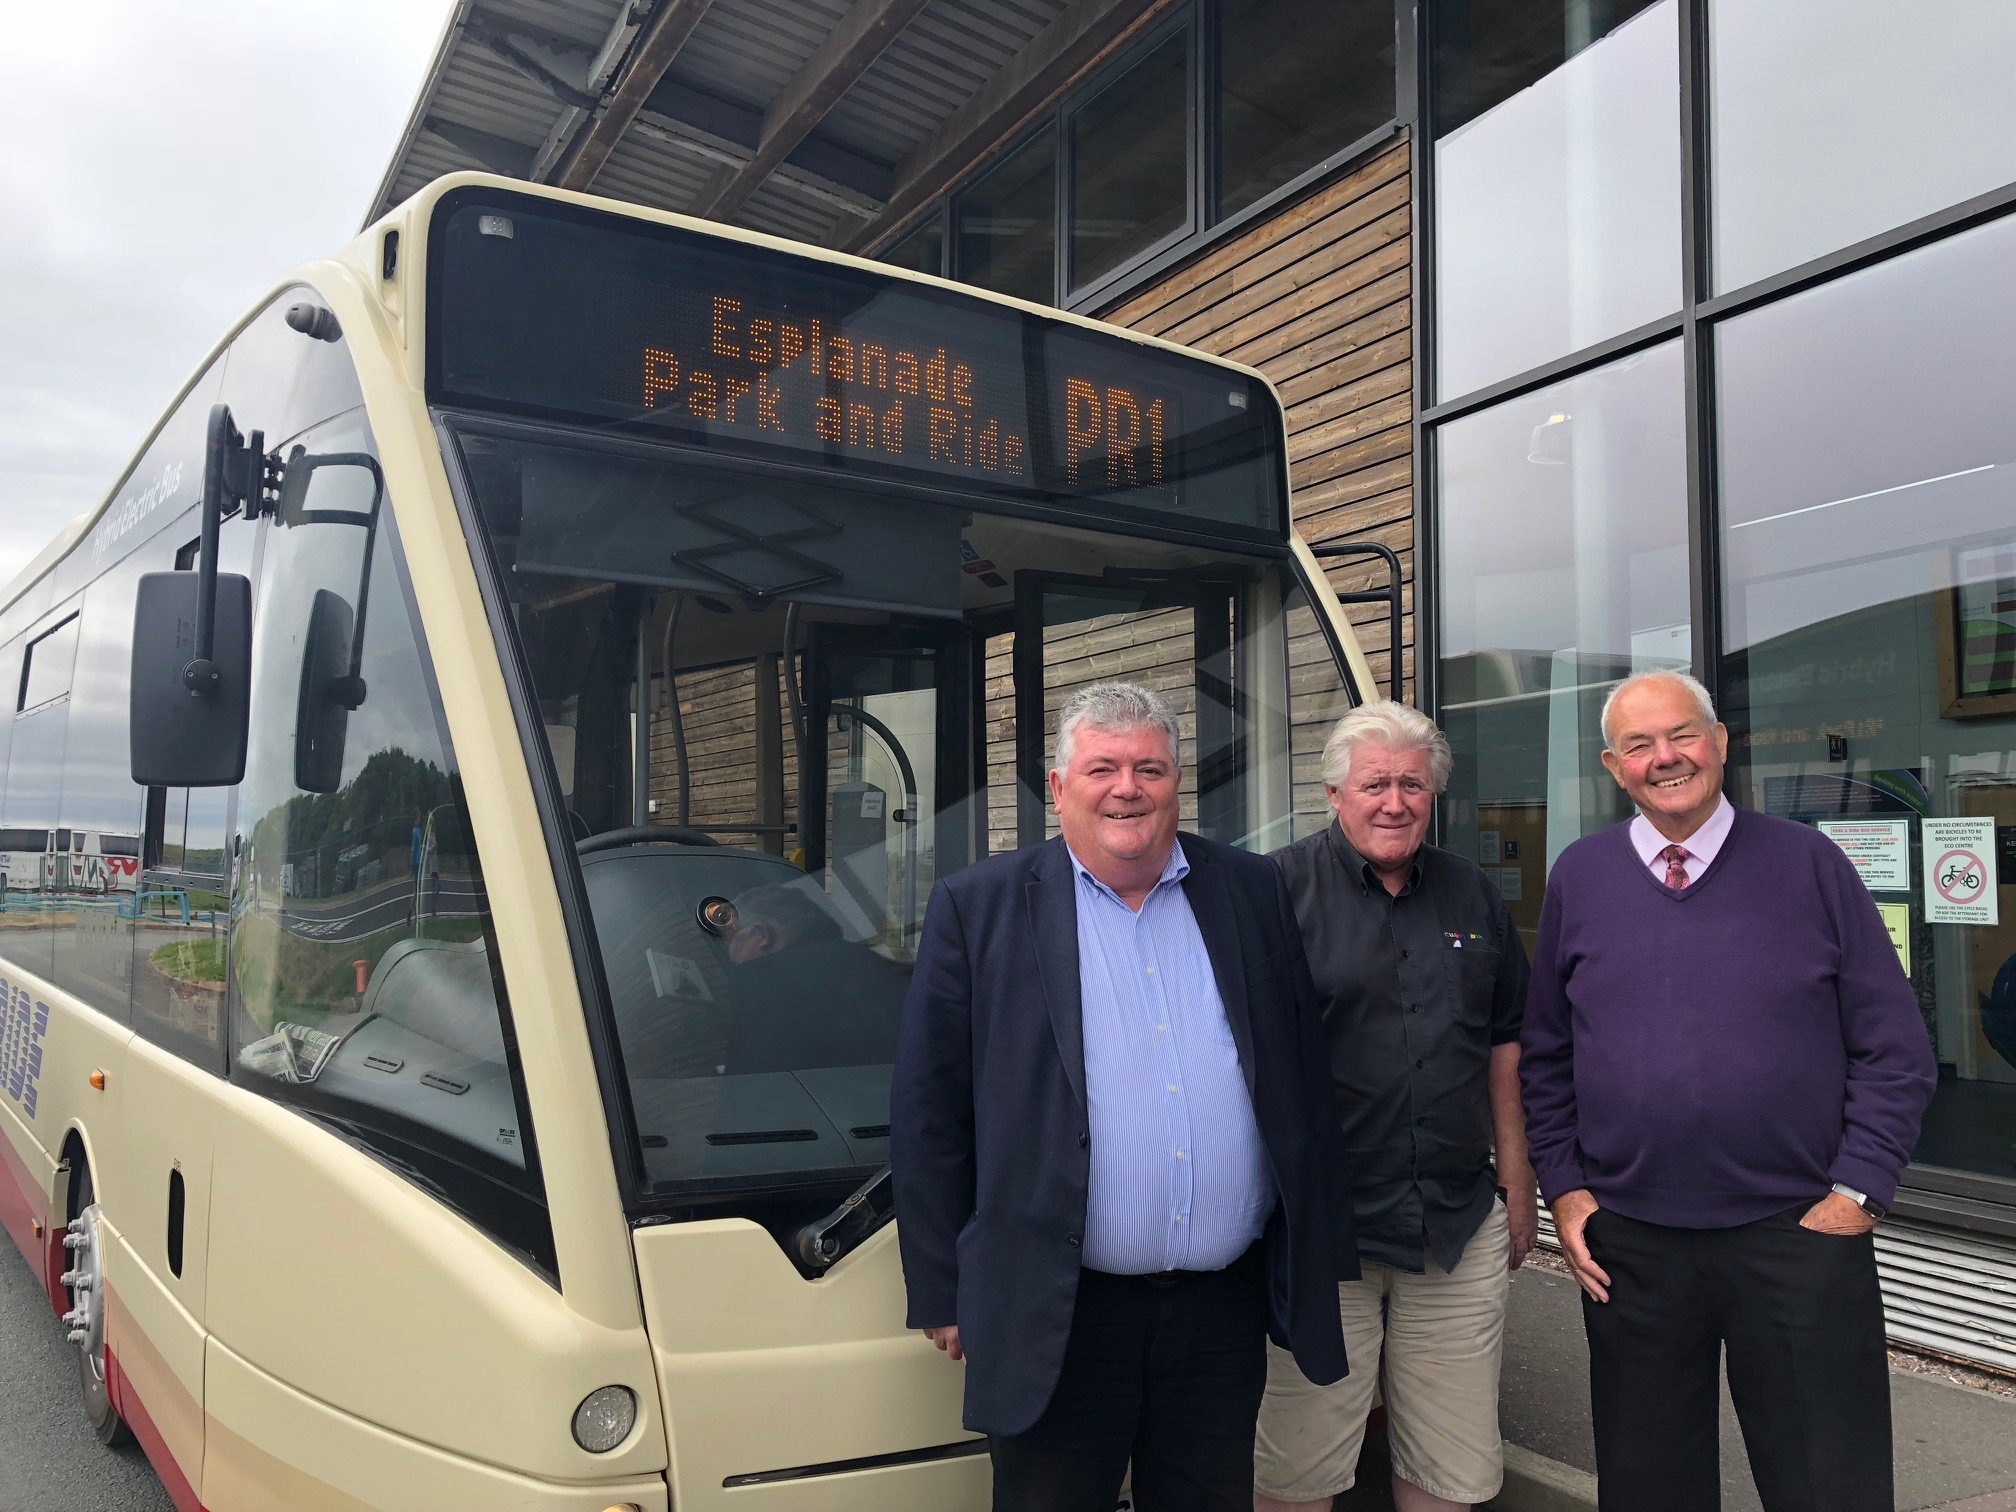 Southport firm Cumfybus to run Park & Ride services